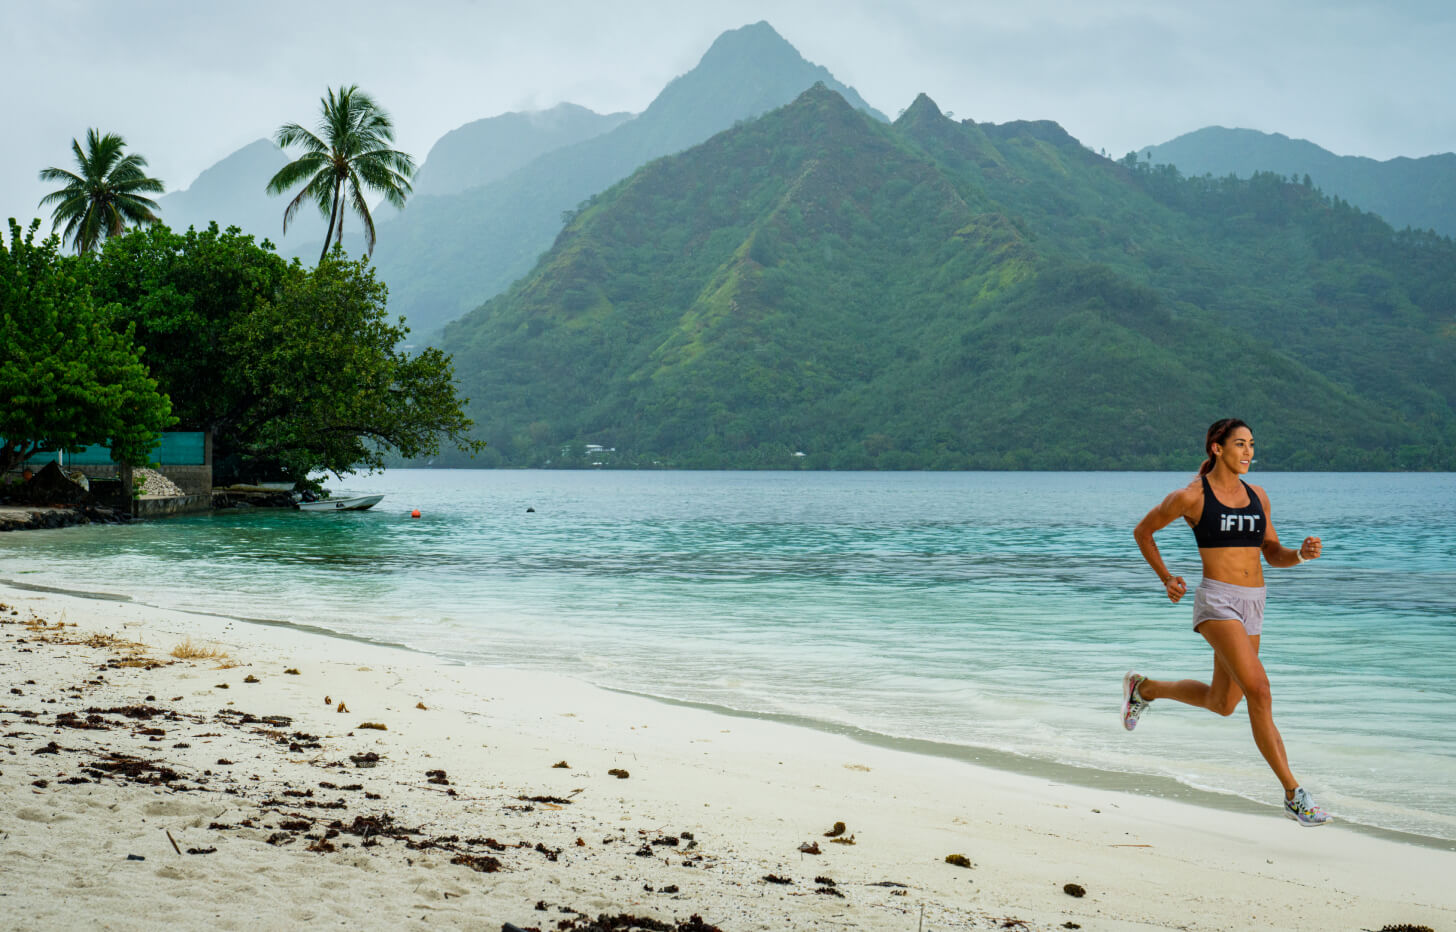 iFit trainer coaches a beach running workout